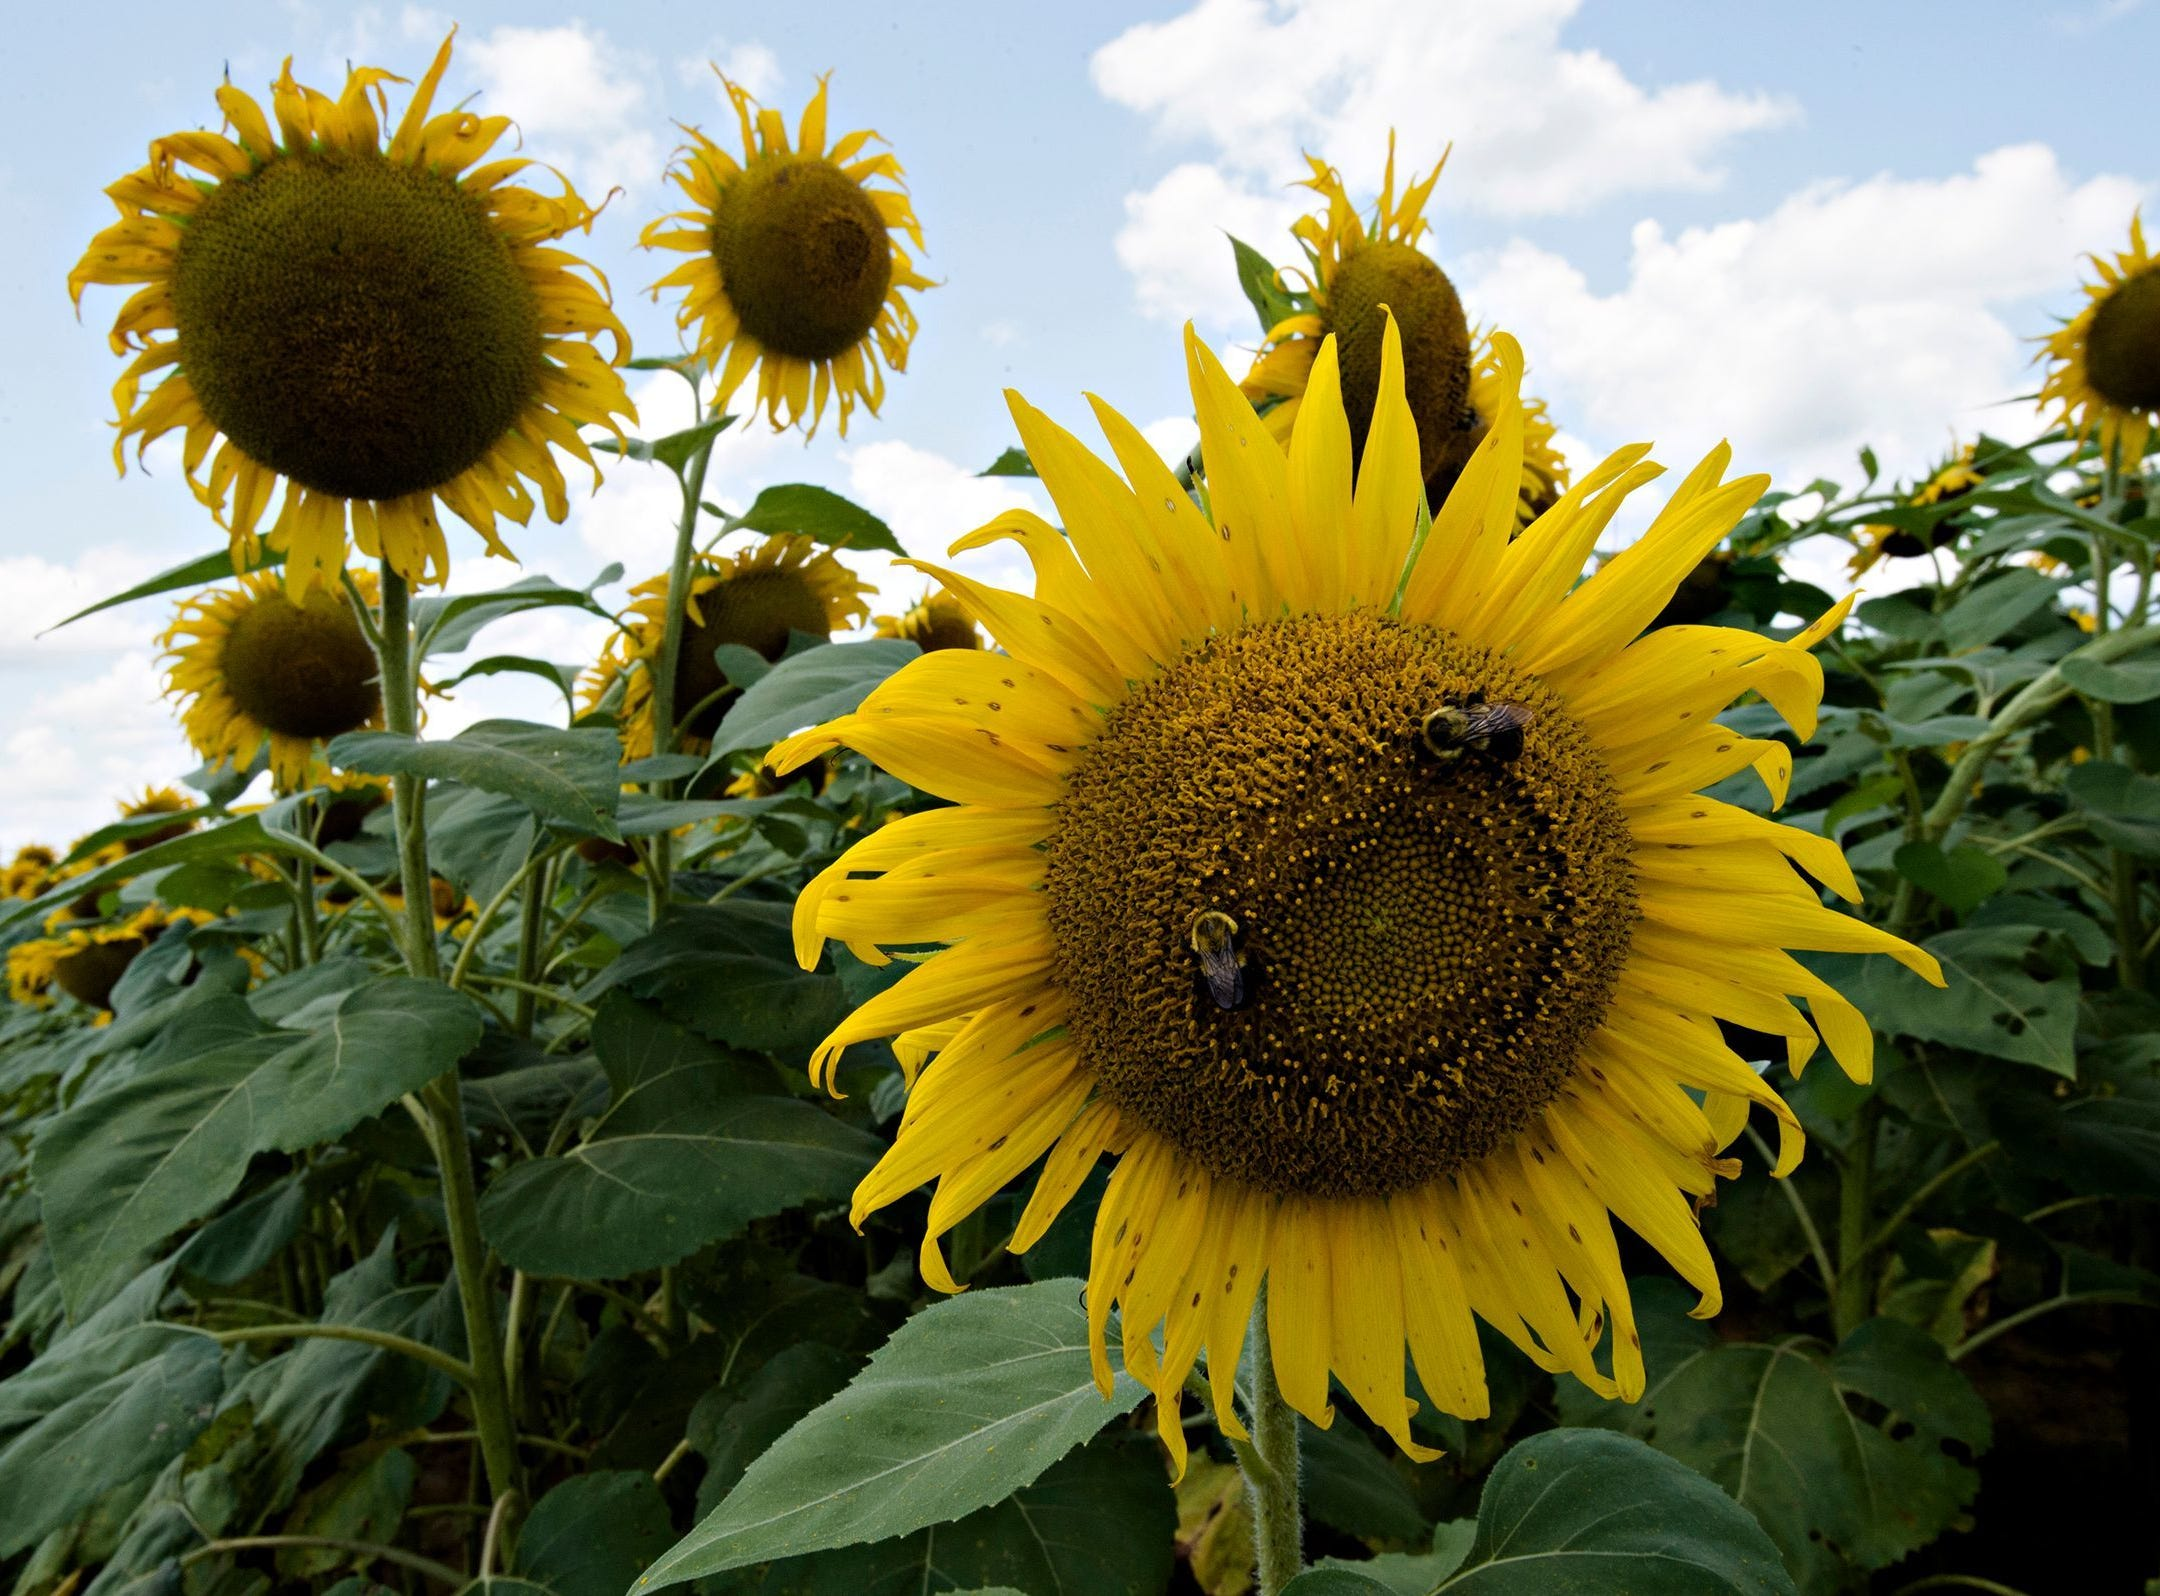 Sunflowers grow in The Sunflower Field on the family farm of Todd and Kim Sheridan in Autauga County on July 18.